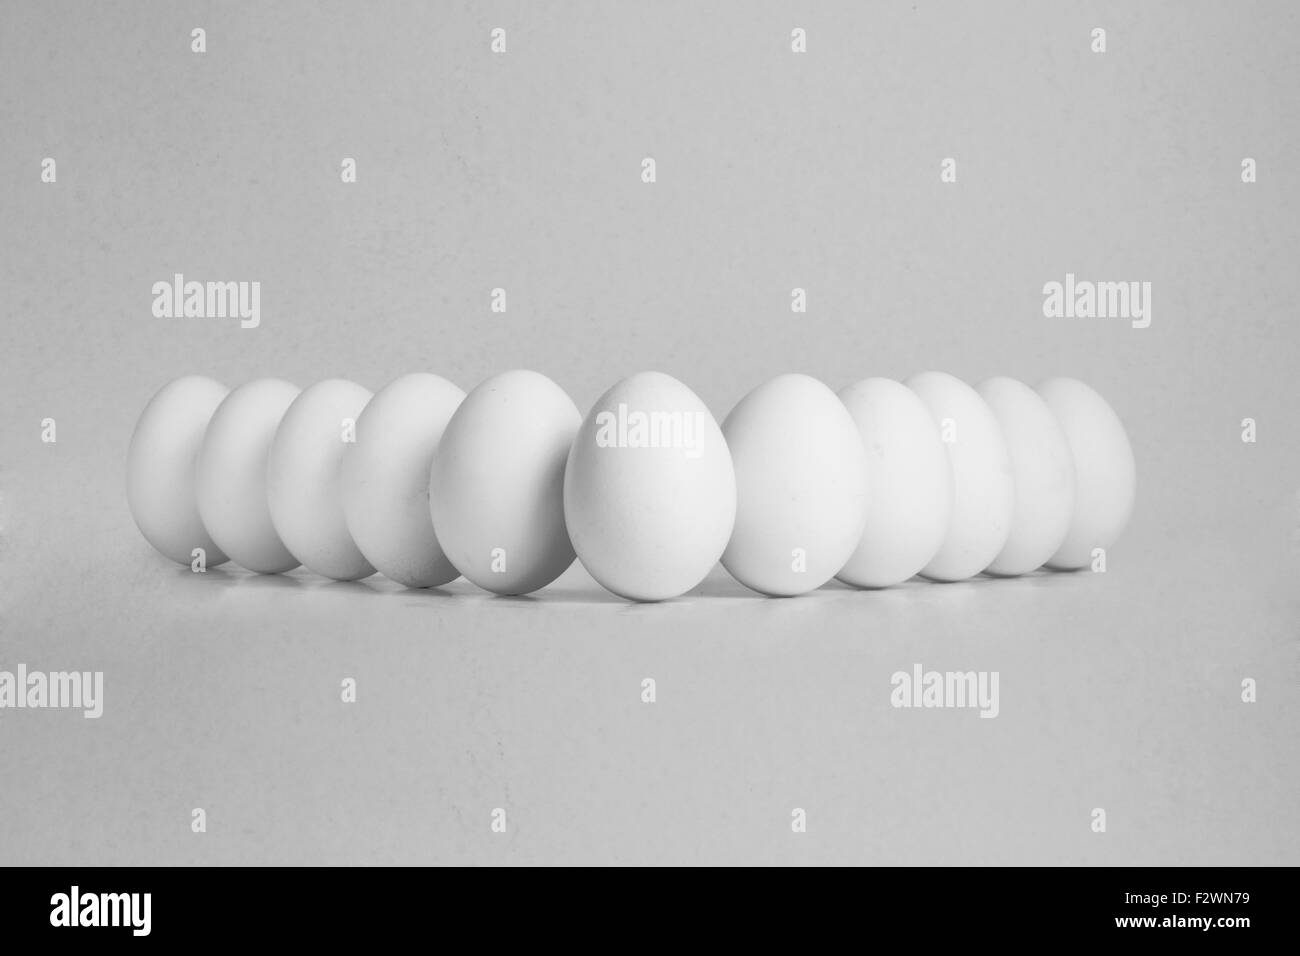 eleven eggs in a row on isolated white background - Stock Image